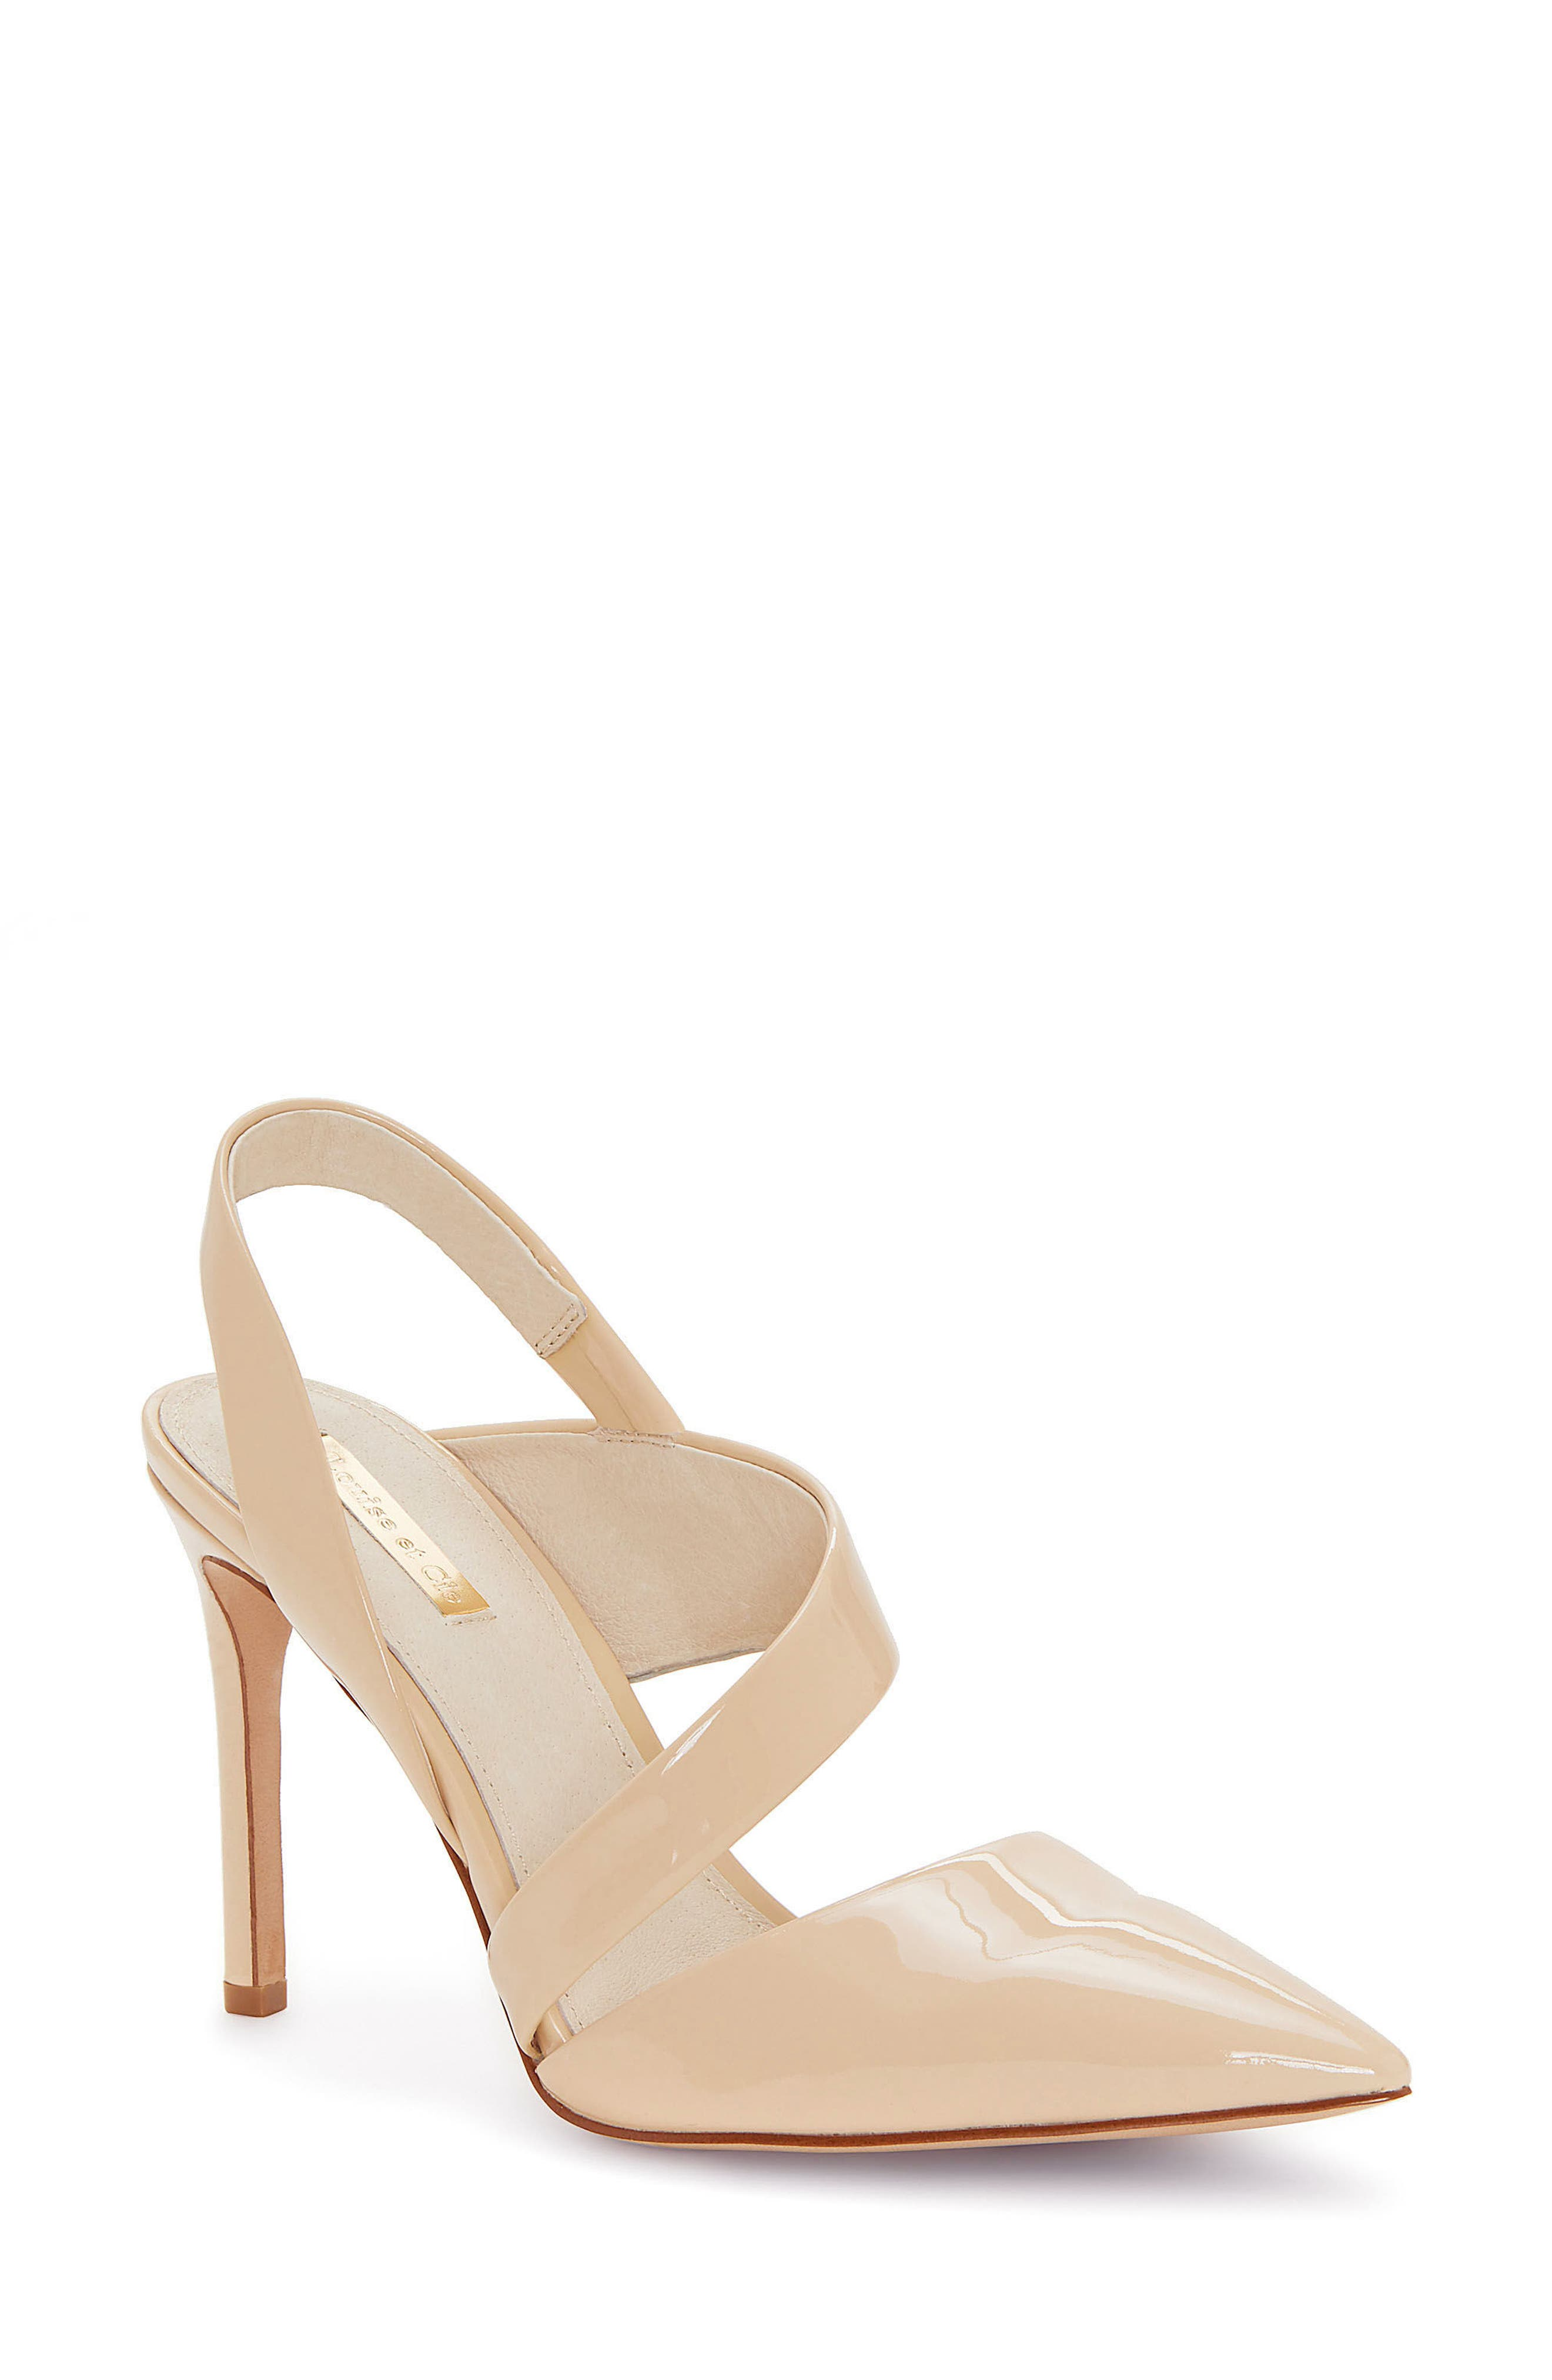 Jerry Pointy Toe Slingback Pump,                         Main,                         color, Odessa Patent